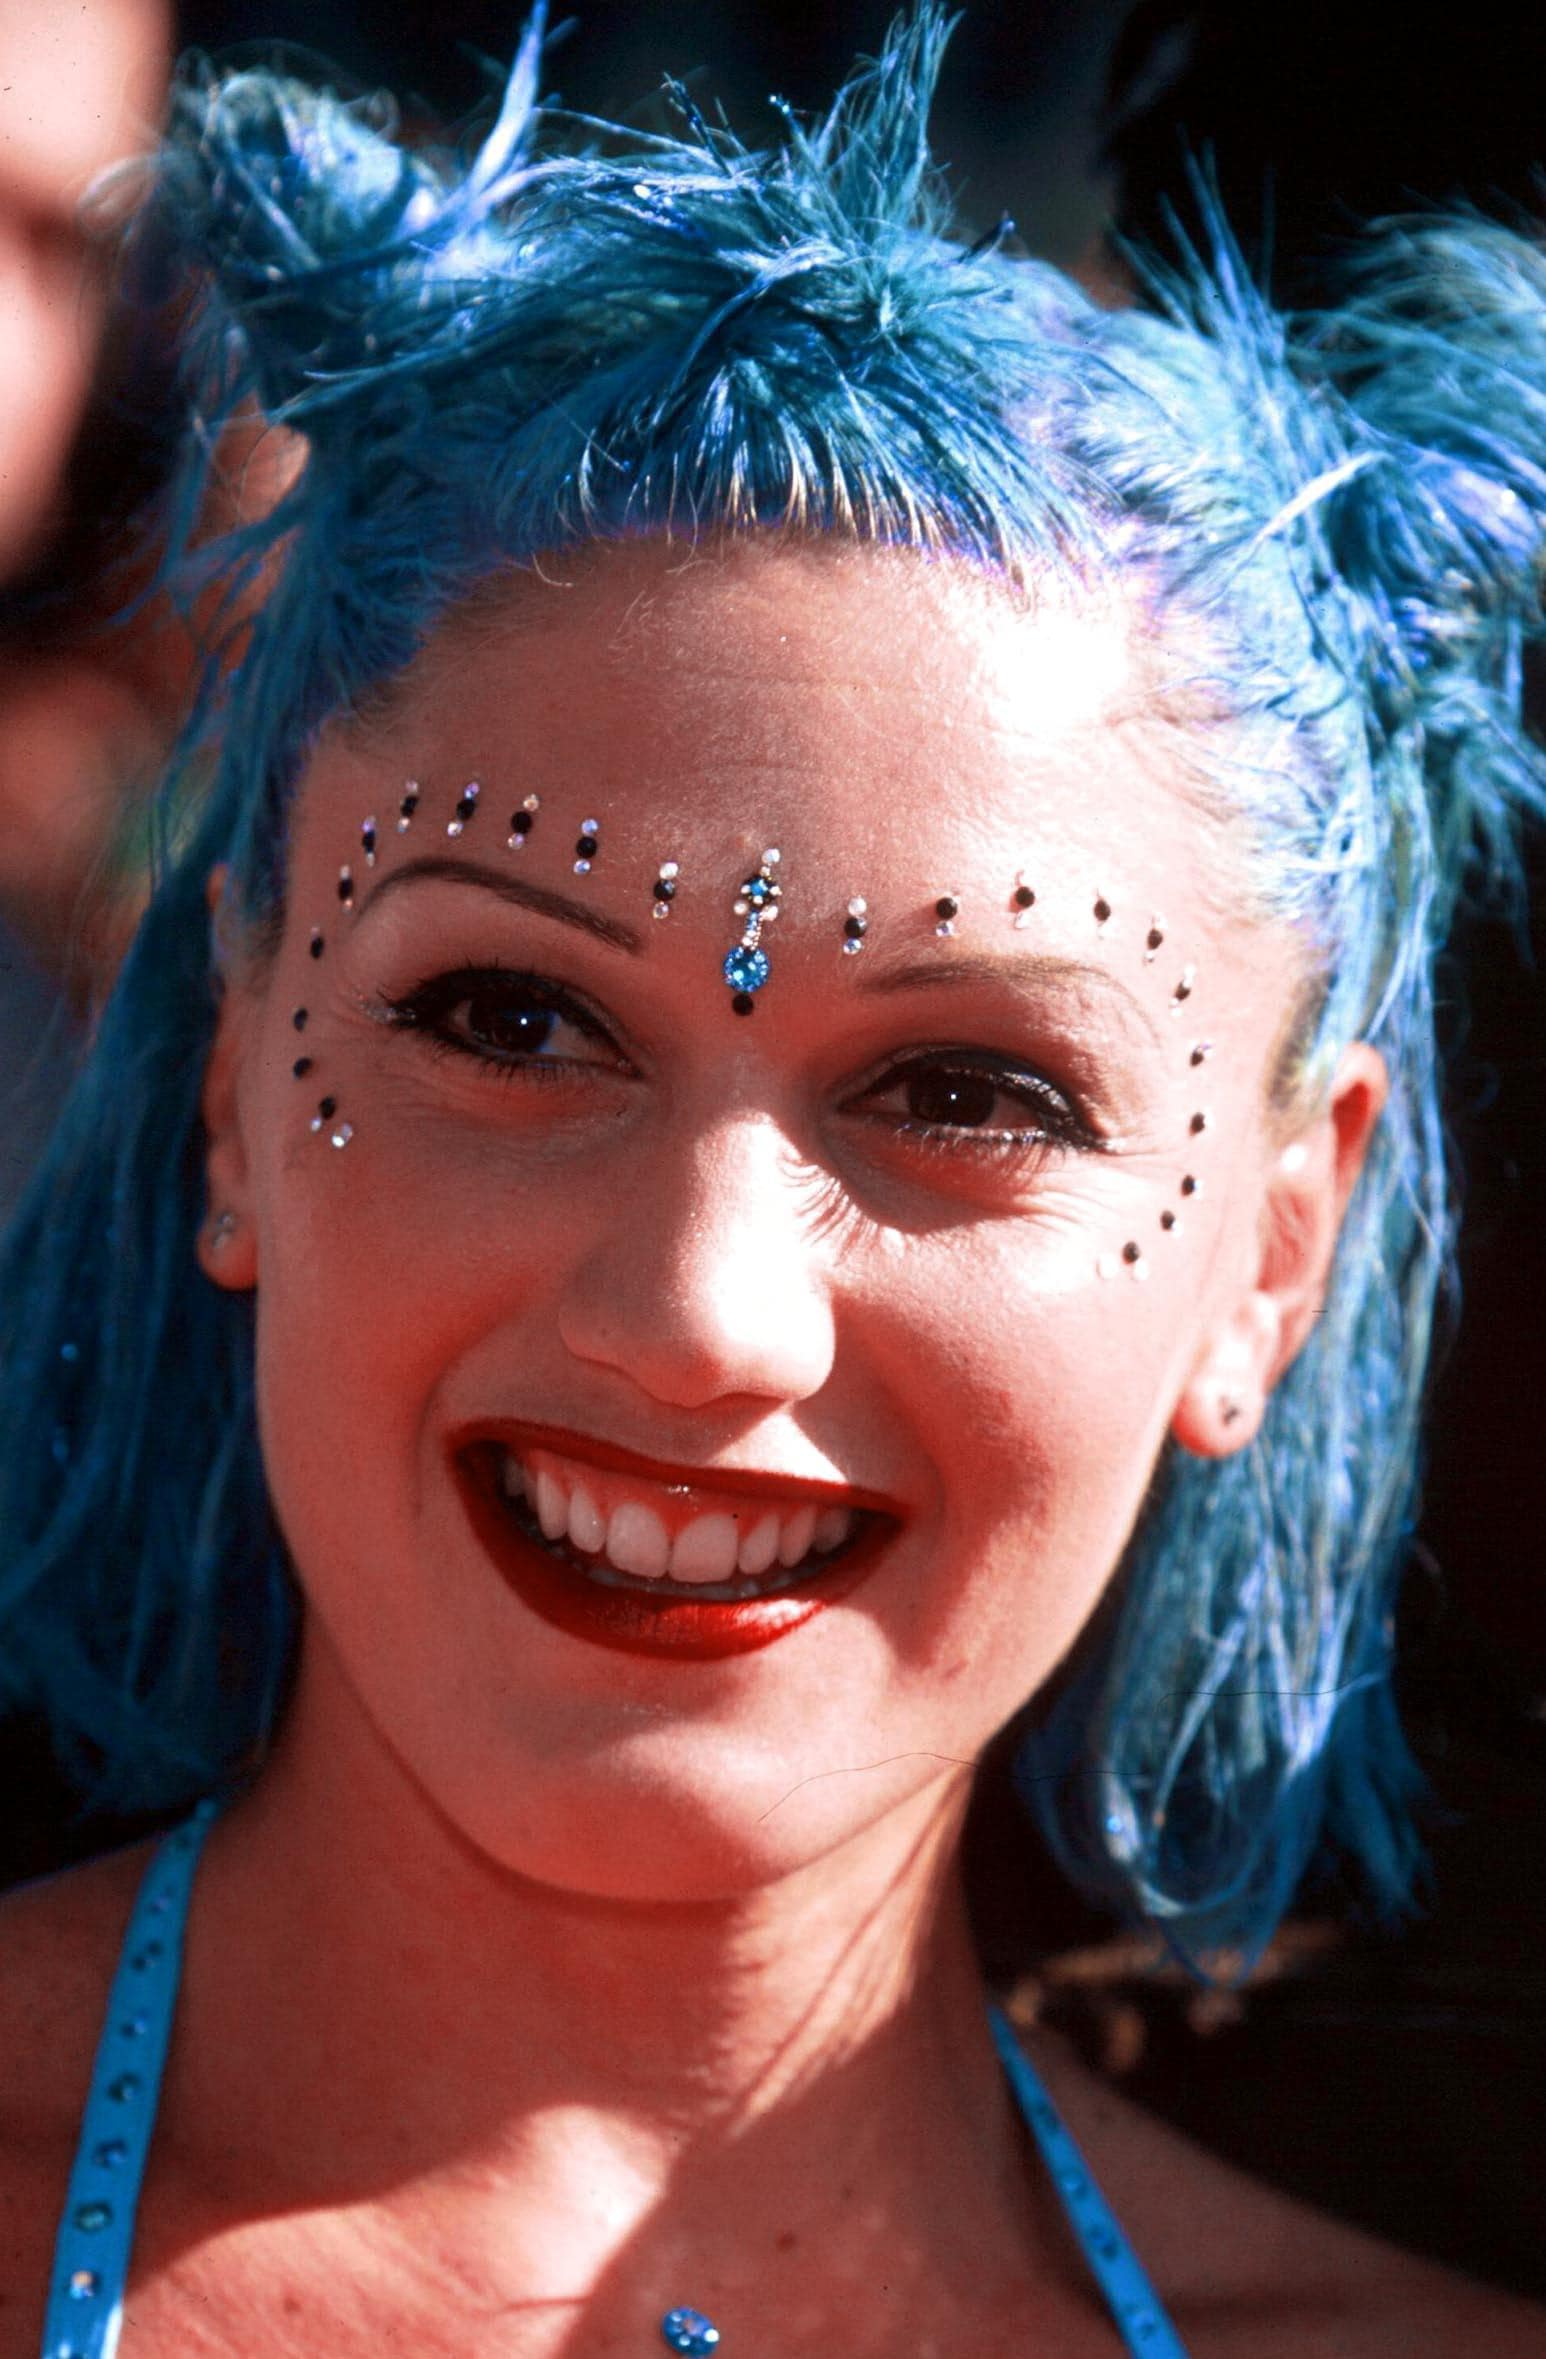 Gwen Stefani blue shoulder length hair with half up space buns